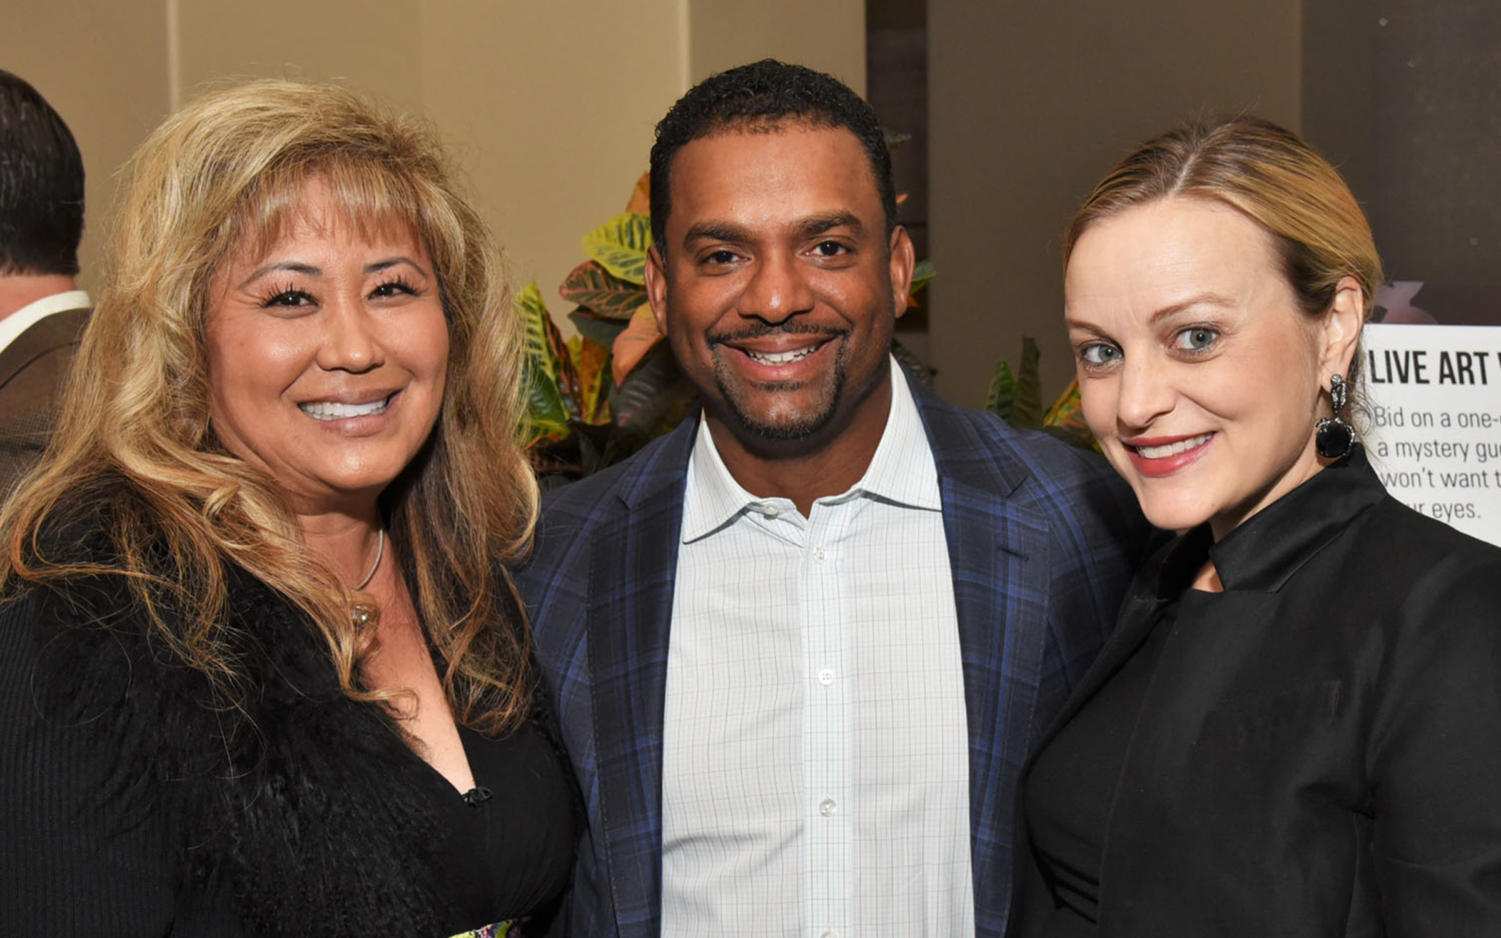 Fresh Start Surgical Gifts CEO Shari Brasher (left) stands with actor Alfonso Ribeiro and Angela Ribeiro (right) on March 3 during the 27th Annual Celebrity Golf Classic fundraiser. (Photo by William Quiroz, WMQuiroz Photography)